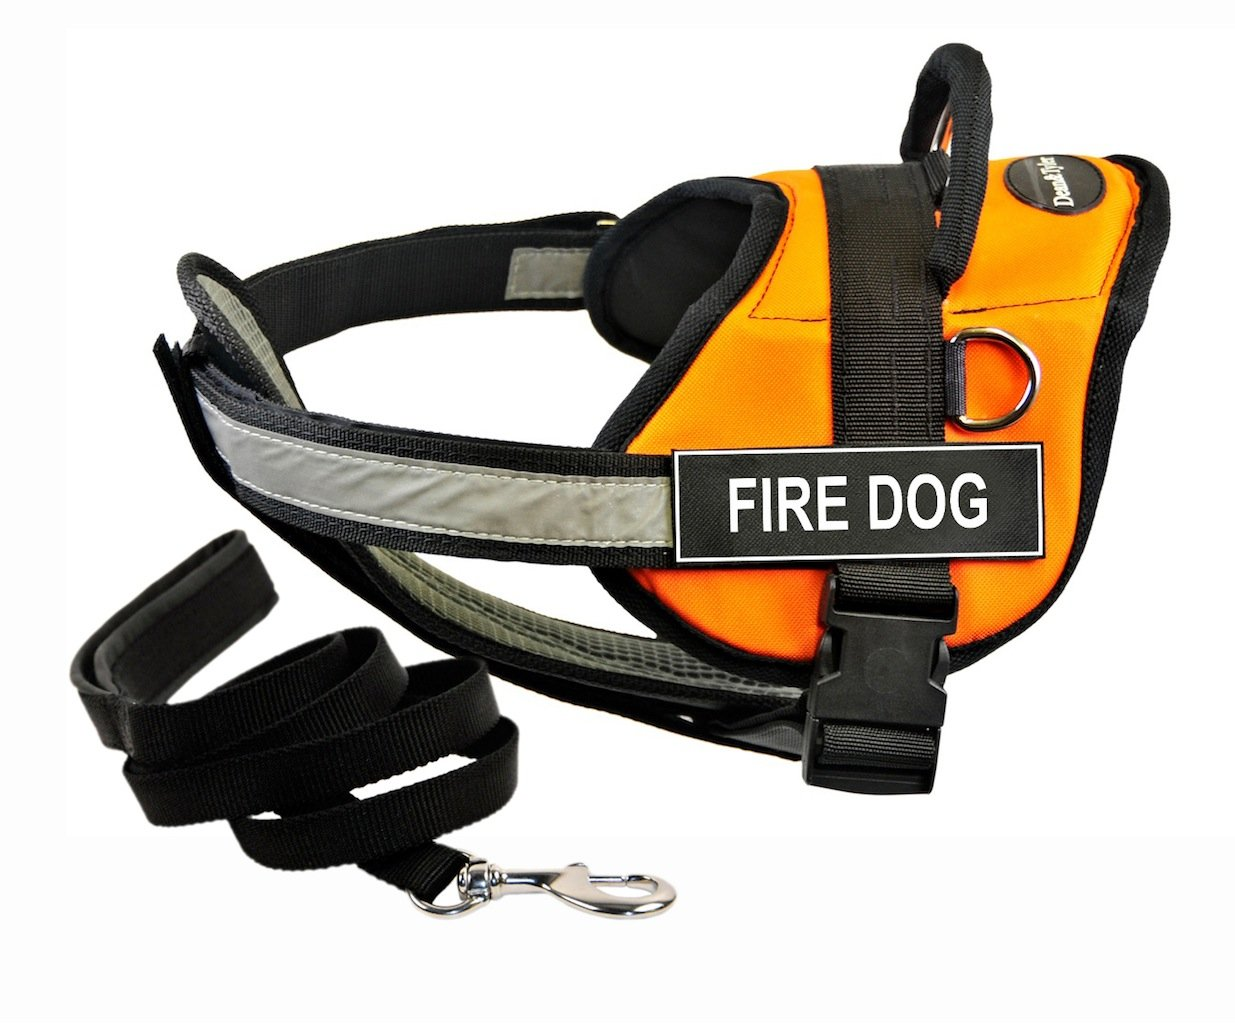 Dean & Tyler's DT Works orange FIRE DOG Harness with Chest Padding, Small, and Black 6 ft Padded Puppy Leash.